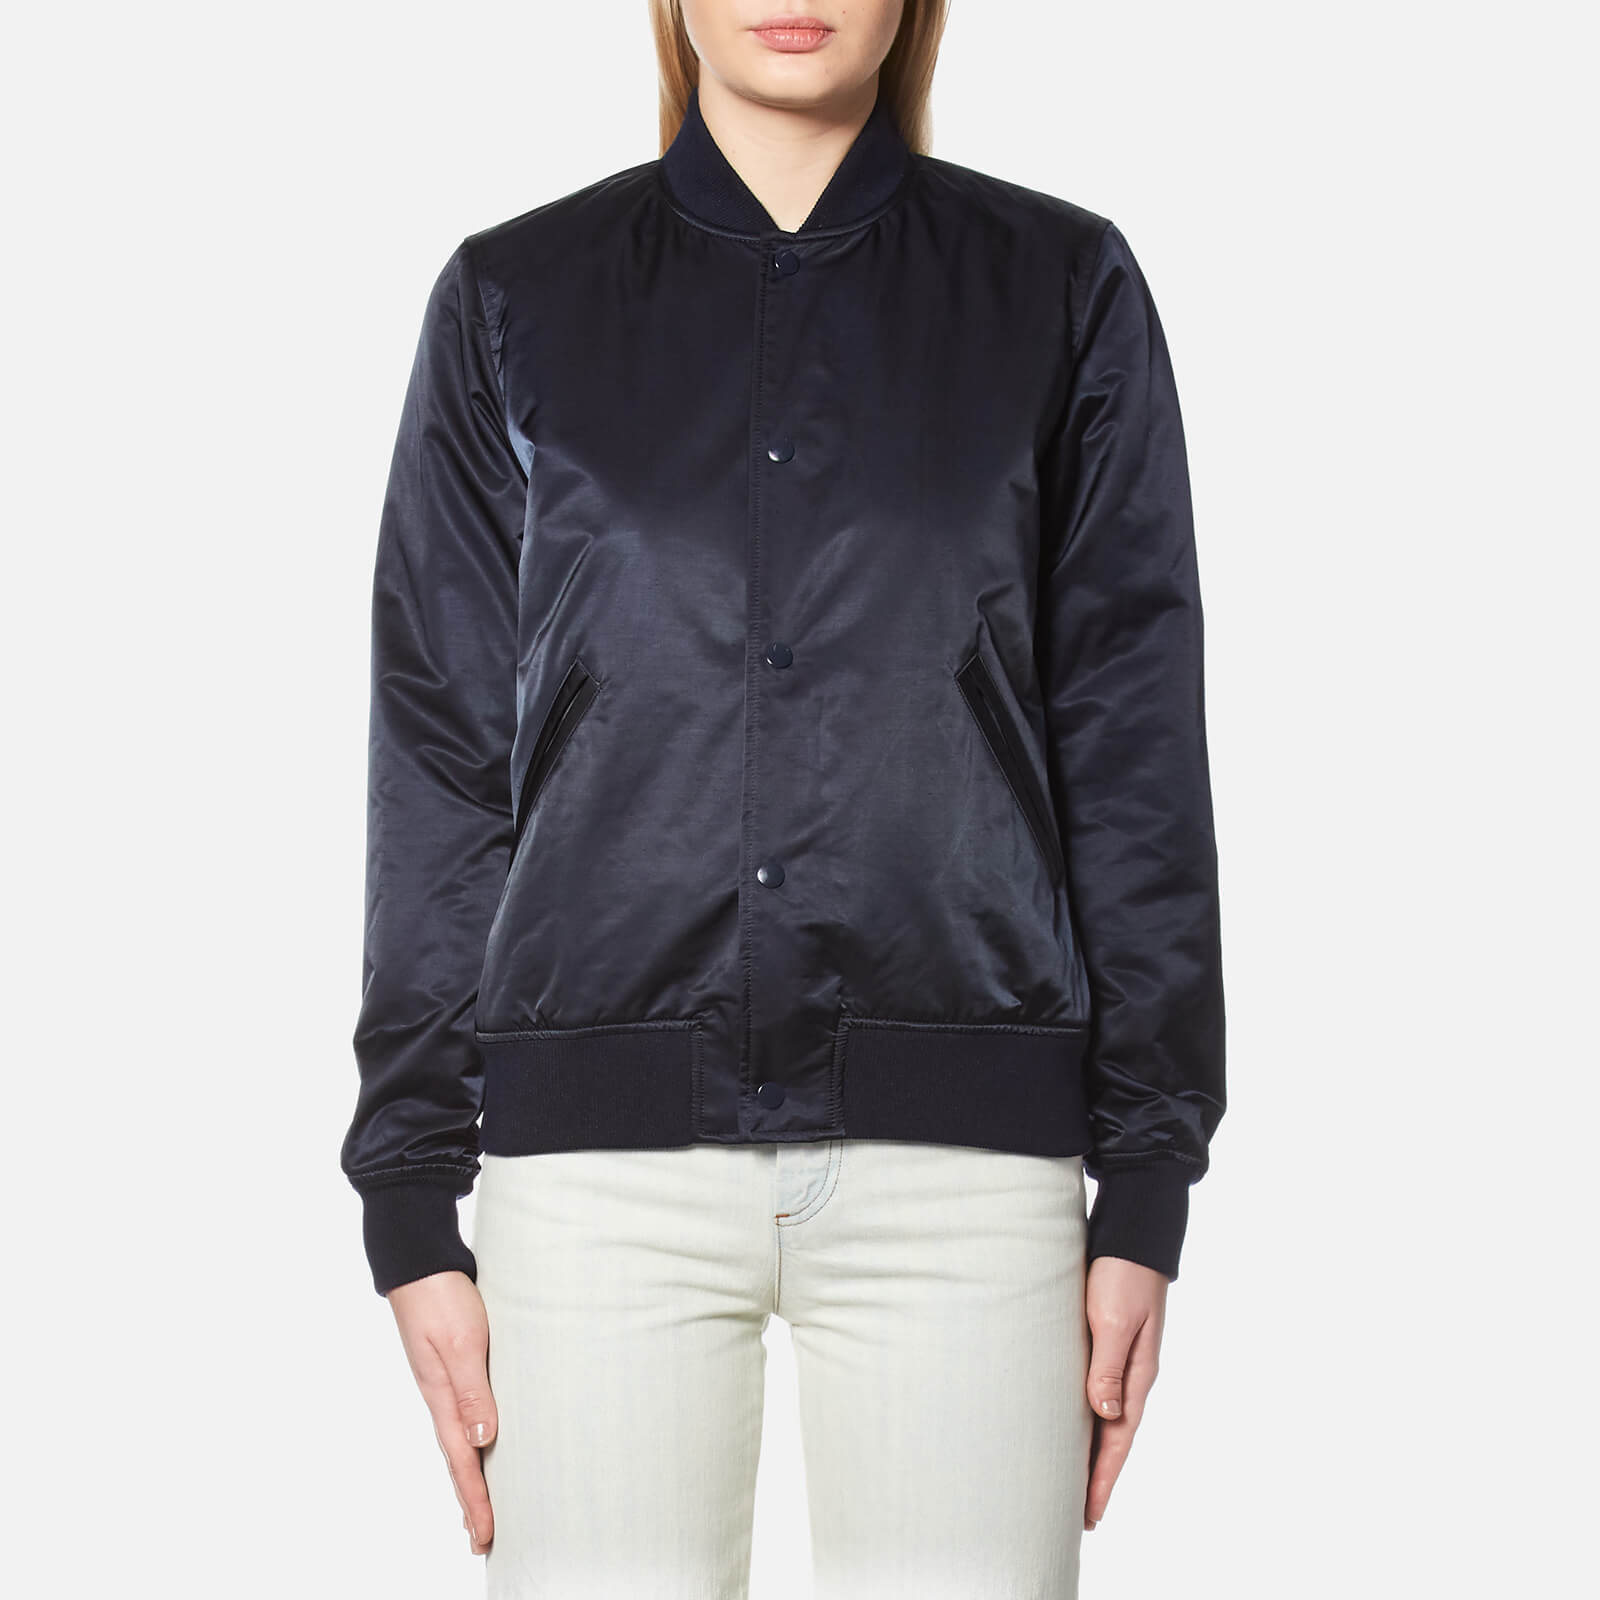 new products for online shop dependable performance A.P.C. Women's Avengers Bomber Jacket - Dark Navy